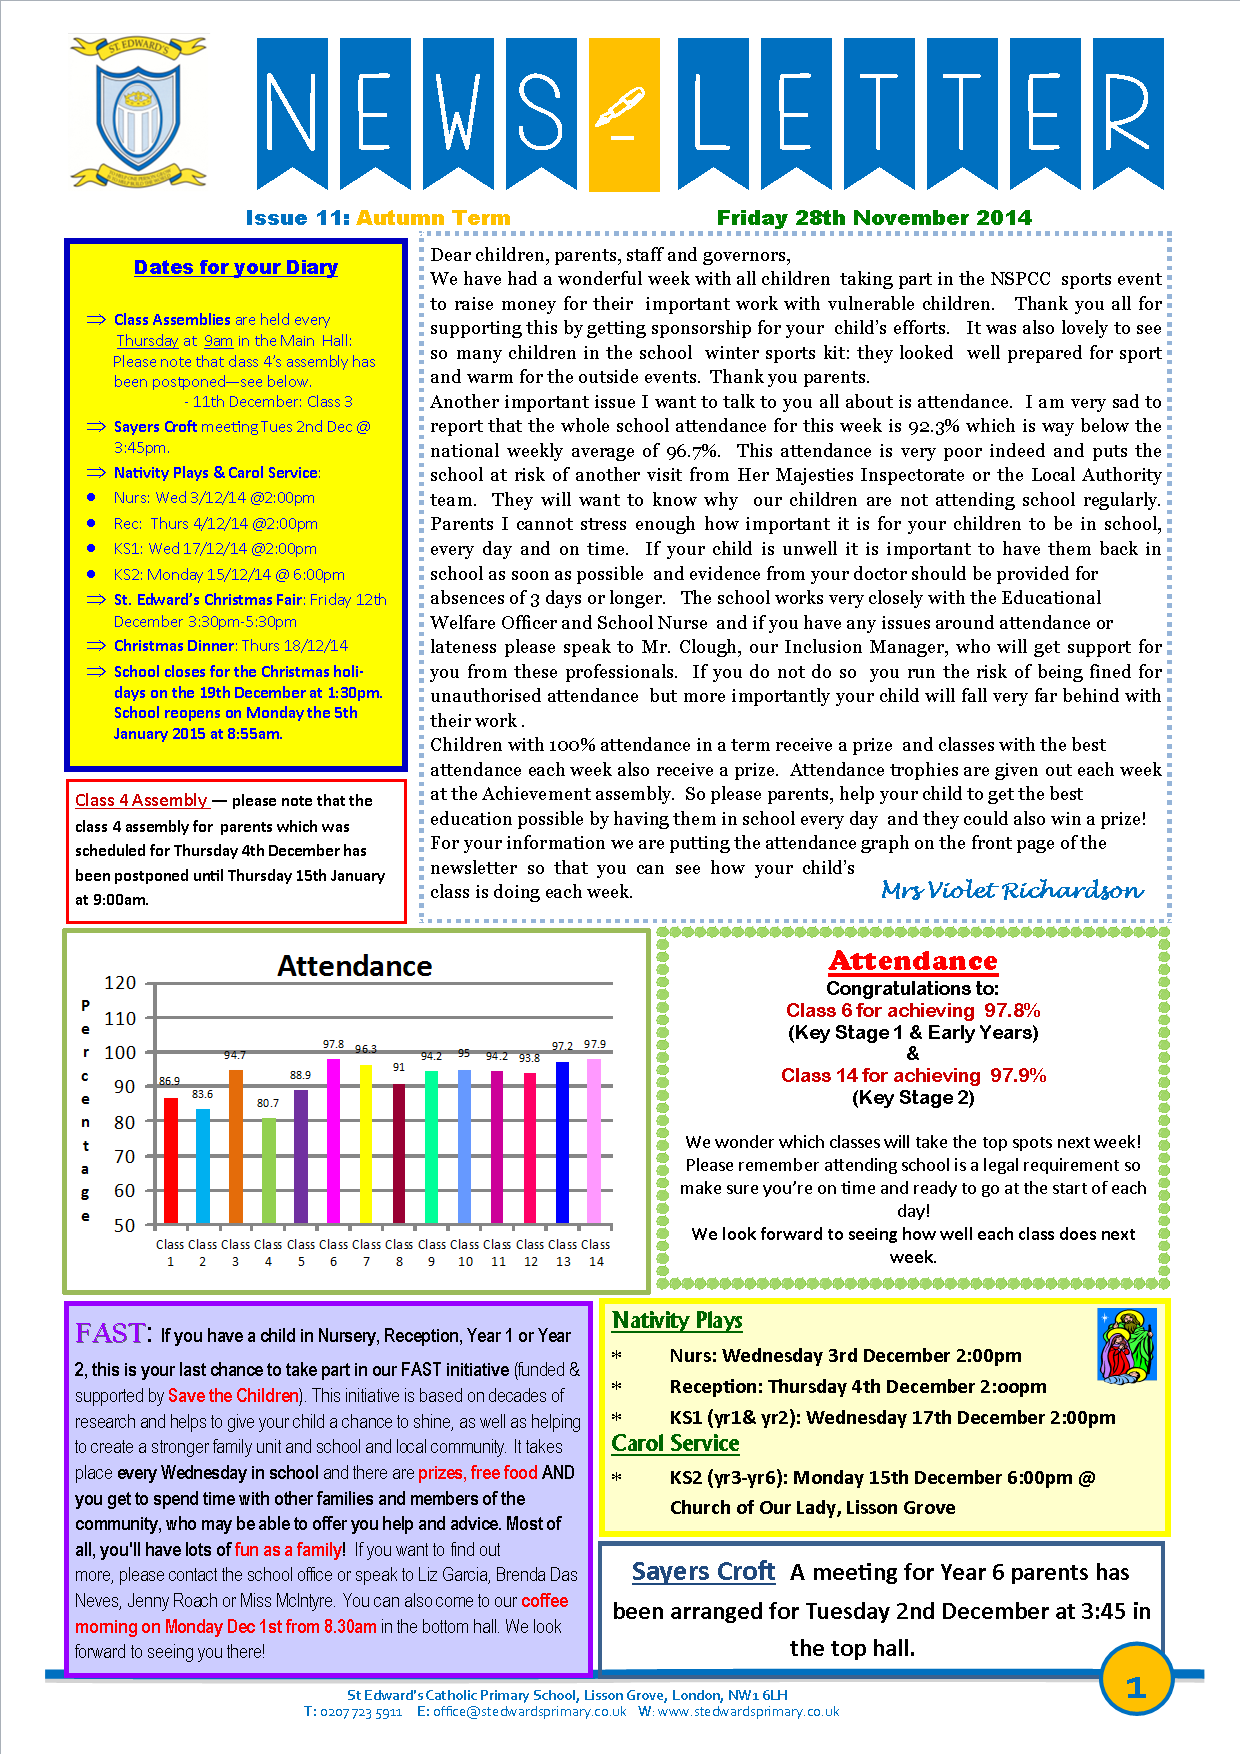 1St Edward's Newsletter Issue 11 28th November 2014.png